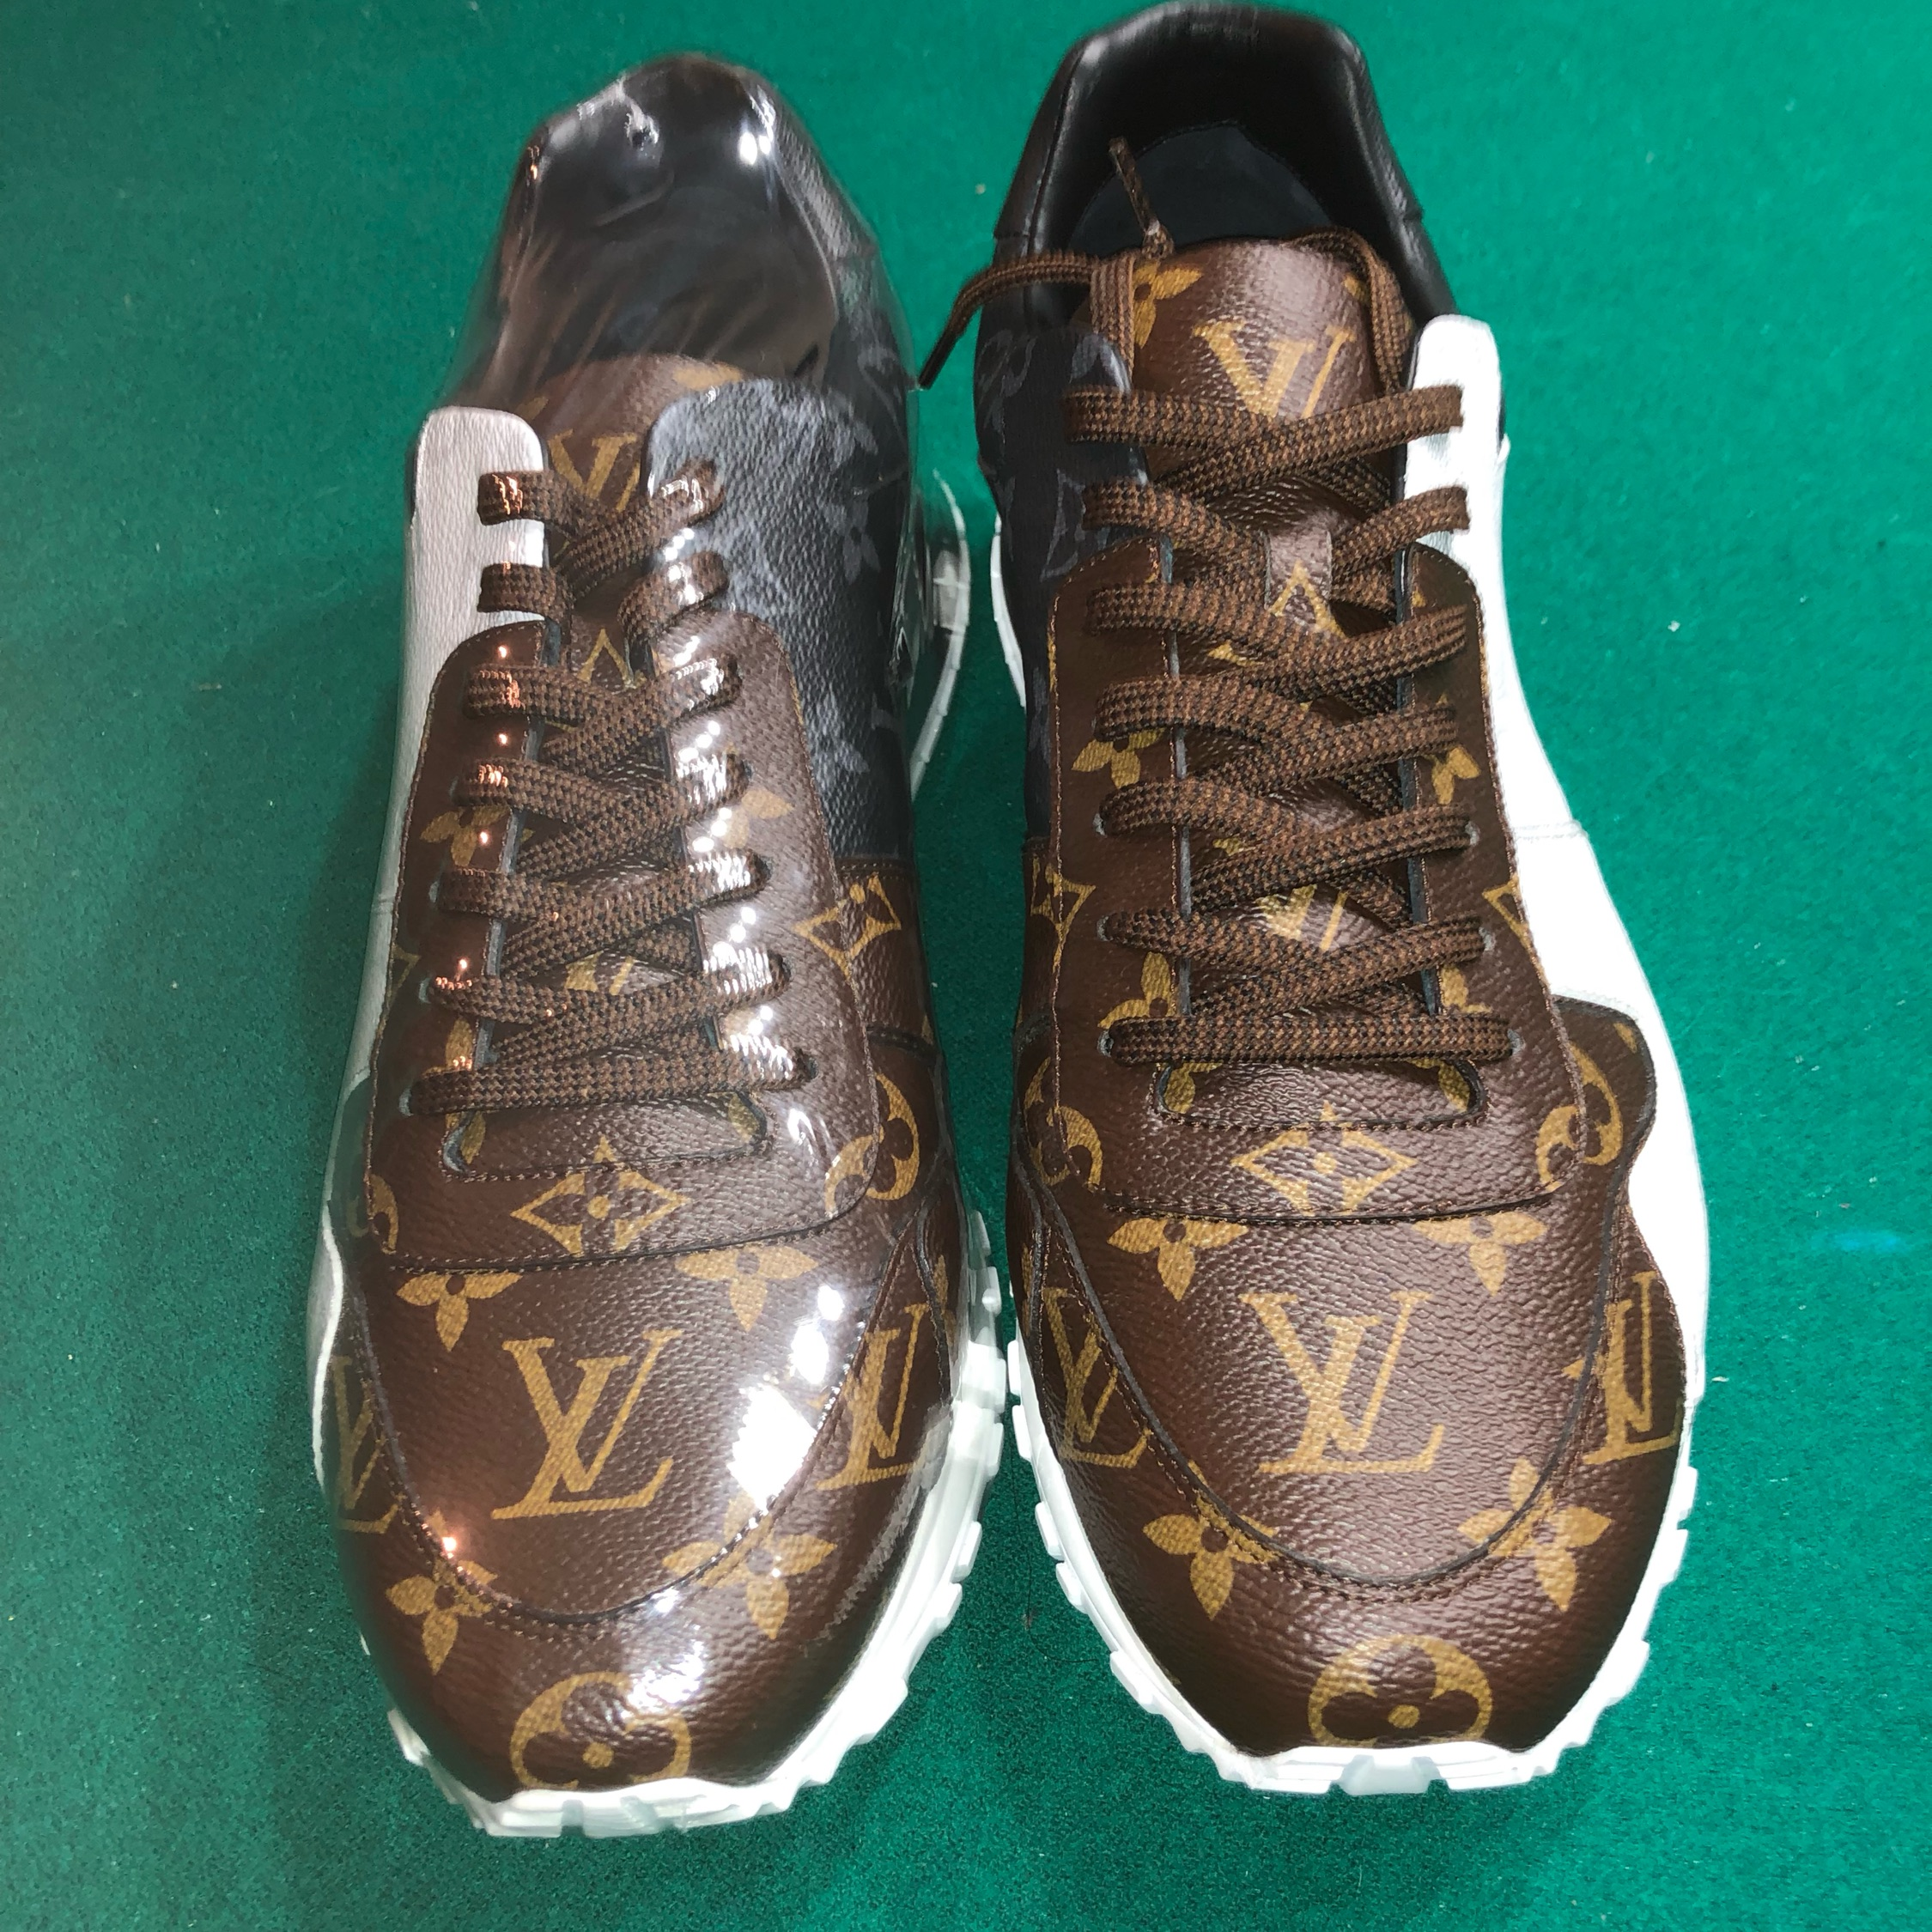 6d4697ce22d8 Louis Vuitton Run Away Monogram Sneakers